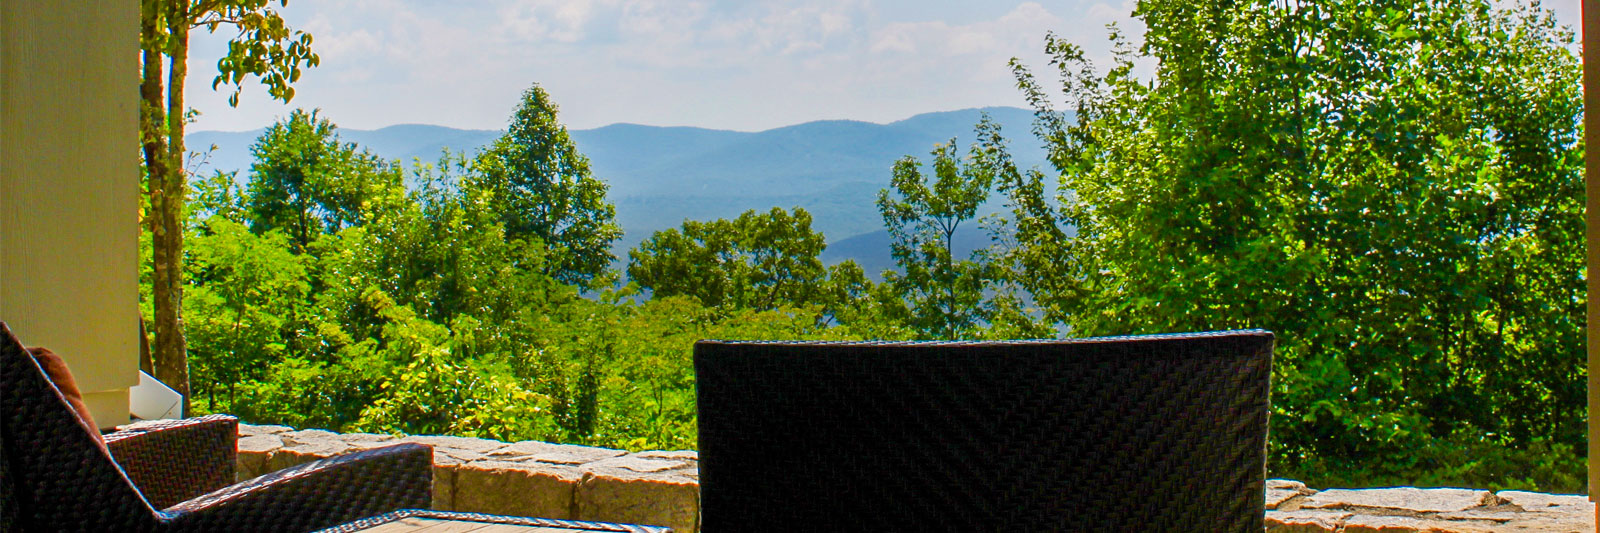 Amicalola Falls Adventure Lodge Contact Us 11